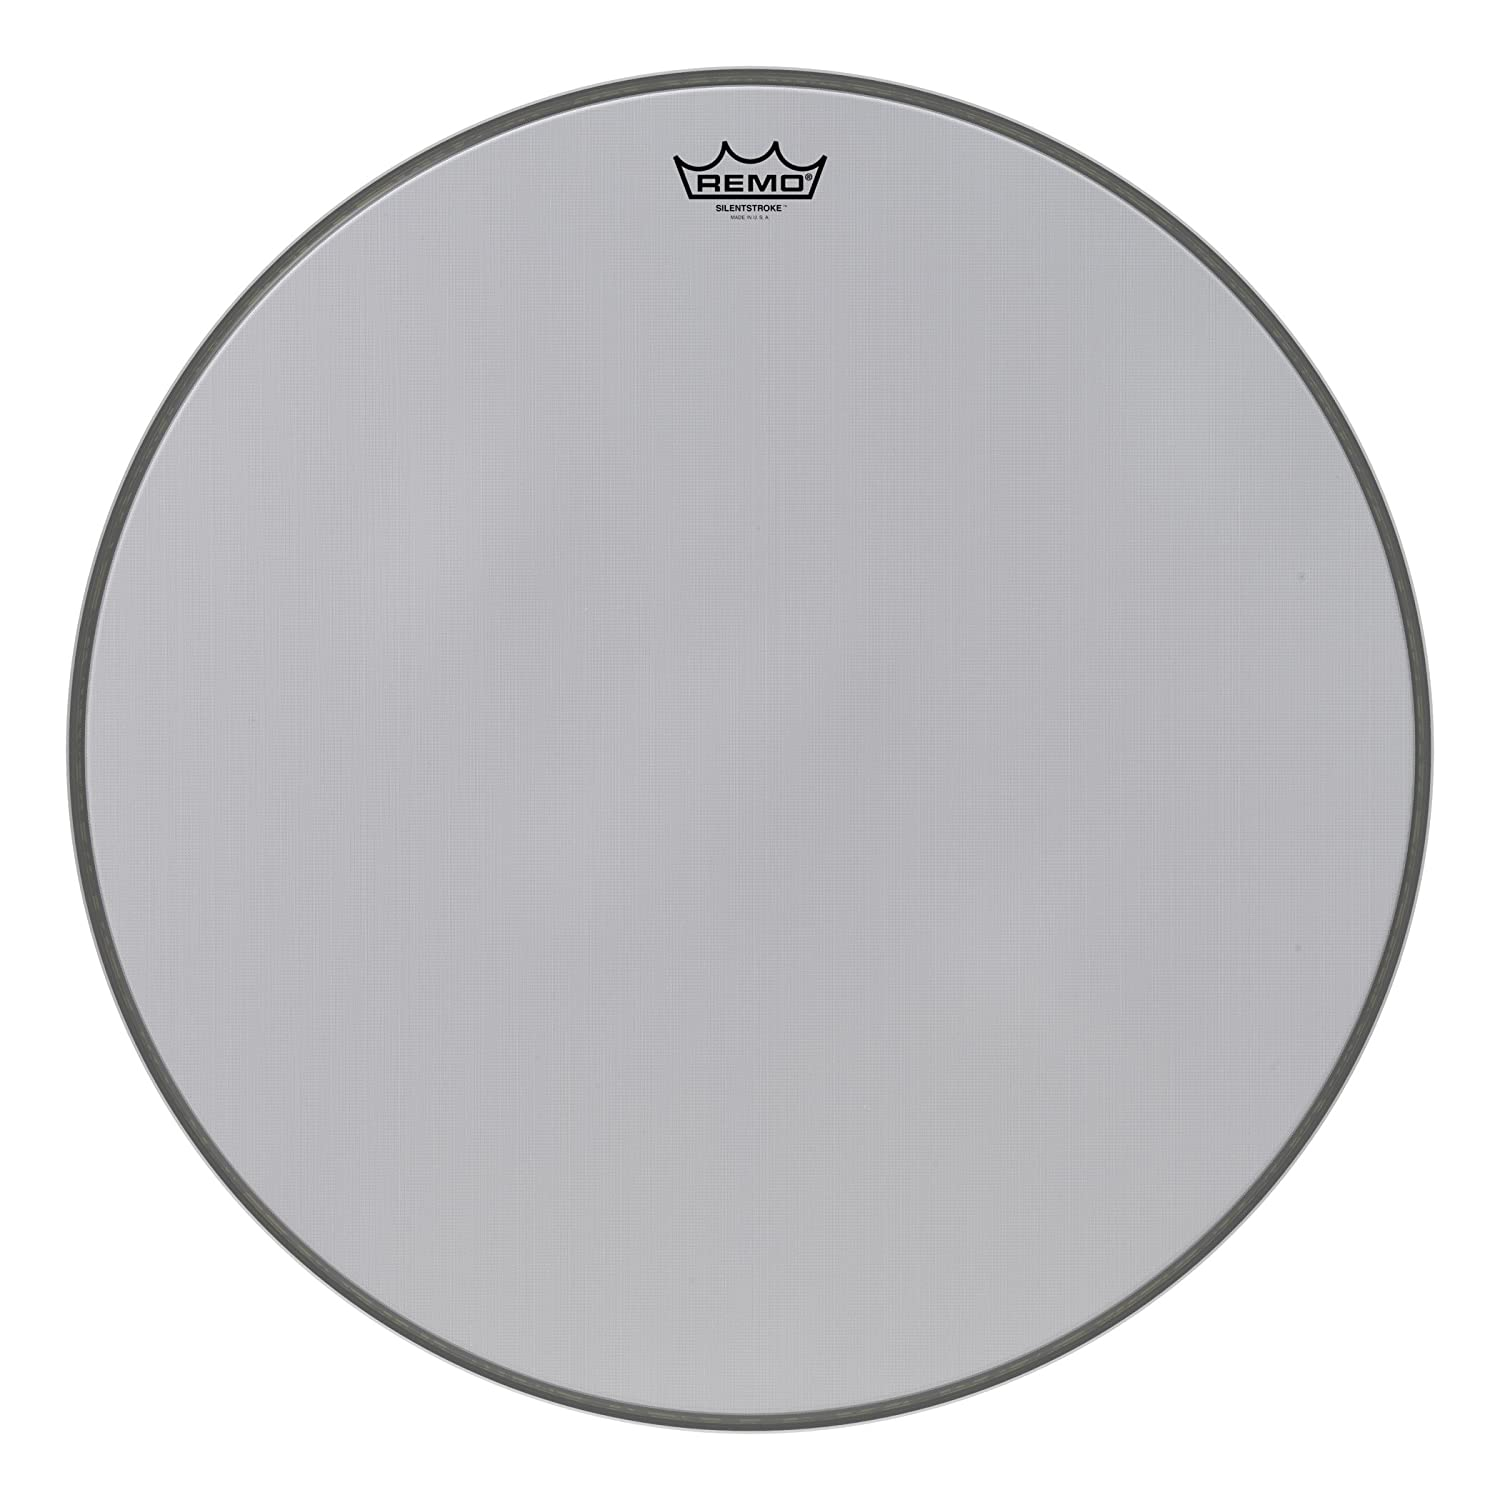 Remo Silentstroke Bass Drumhead, 22""